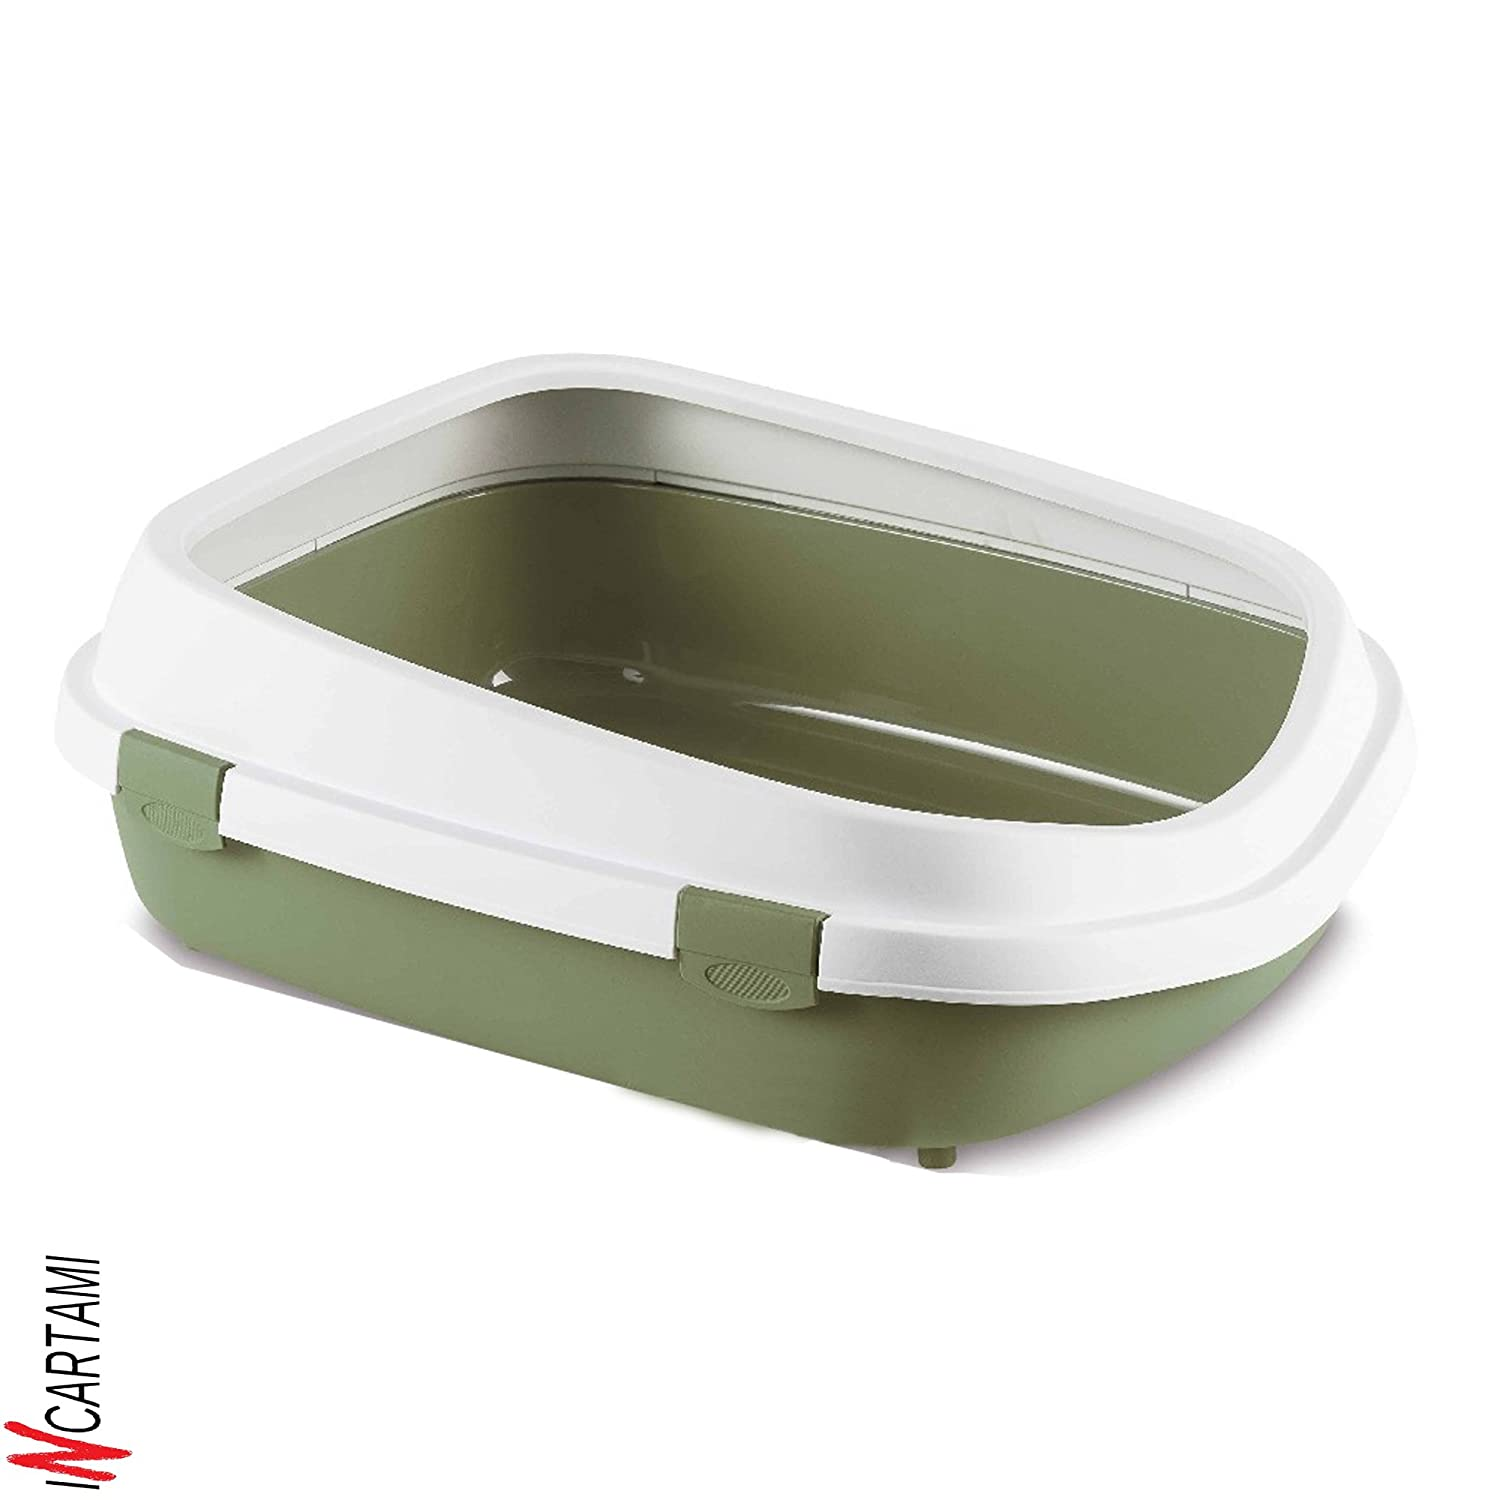 Stefanplast 4-96852 WC Gatos Queen, 55 x 24.5 x 71 cm, Color Blanco y Verde Pastel: Amazon.es: Productos para mascotas